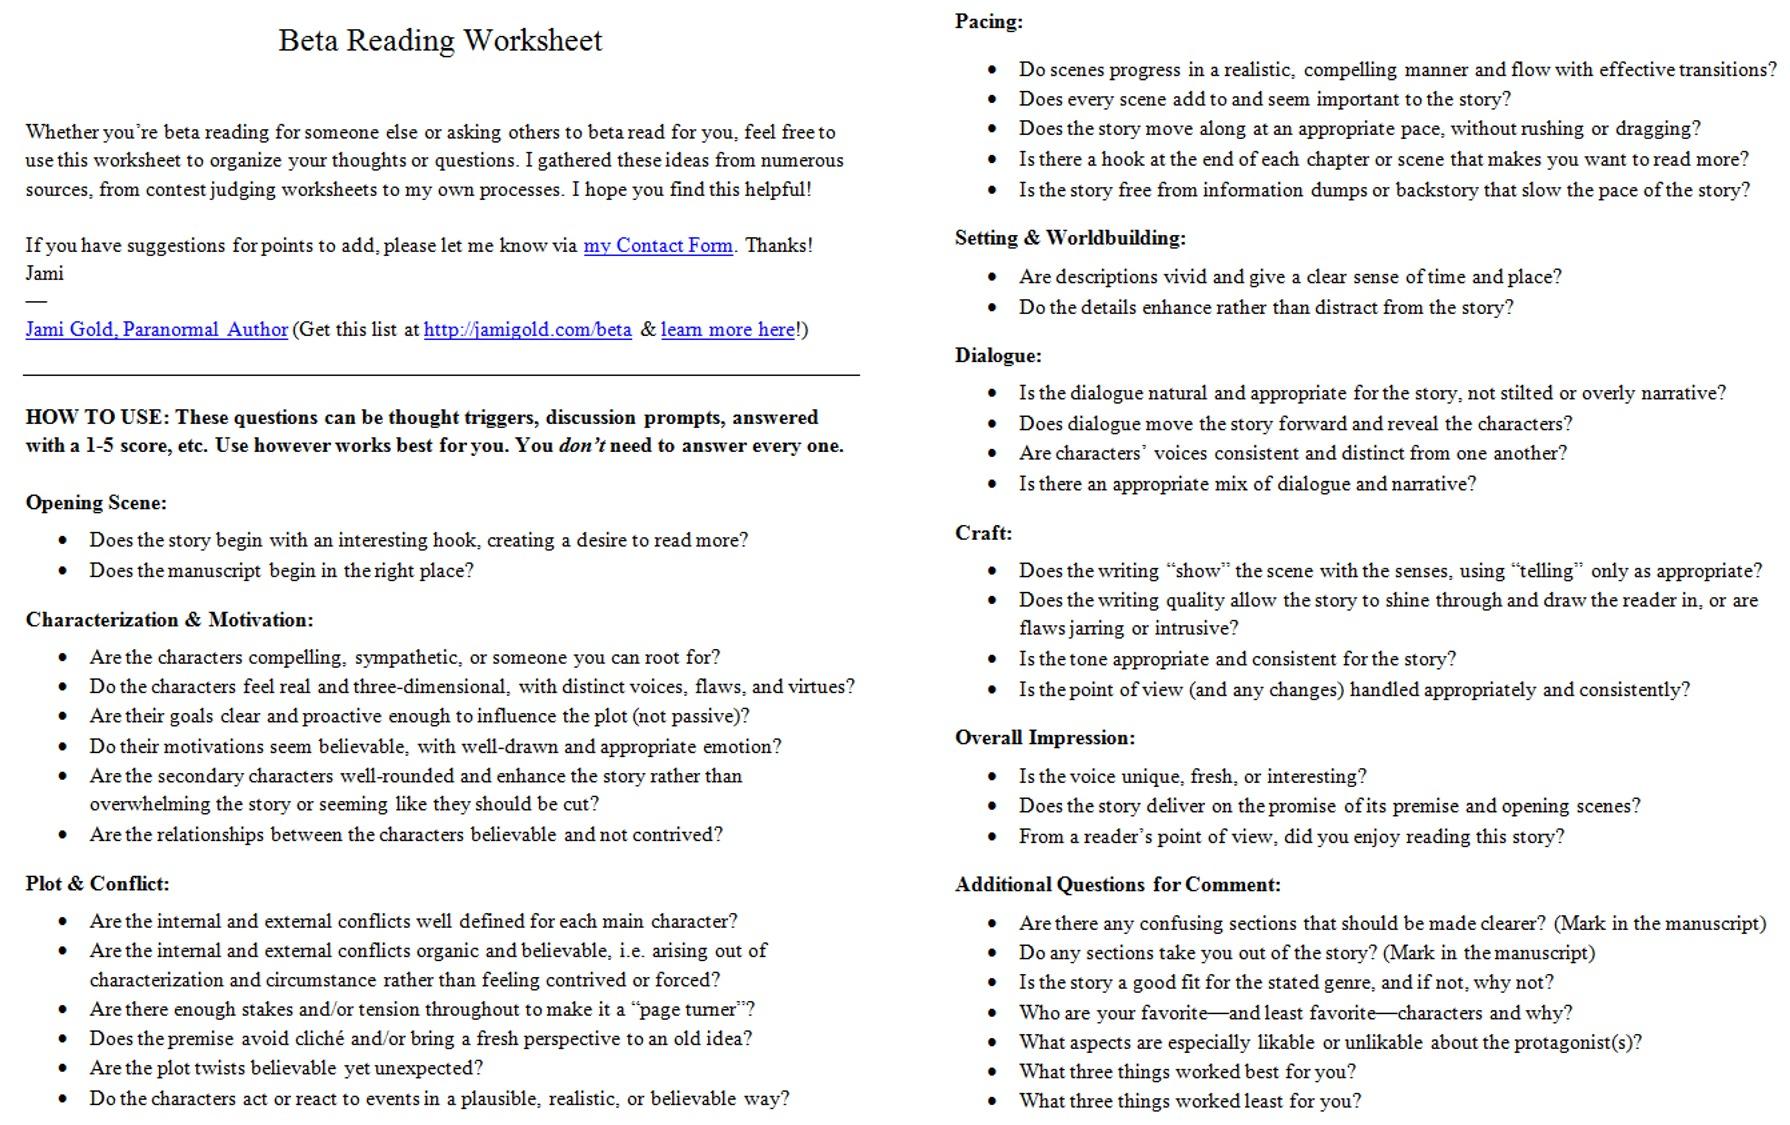 Aldiablosus  Inspiring Worksheets For Writers  Jami Gold Paranormal Author With Fascinating Screen Shot Of The Twopage Beta Reading Worksheet With Archaic End Behavior Worksheet Also Counting Worksheets For Preschool In Addition Coordinate Planes Worksheets And Holt Mcdougal Geometry Worksheet Answers As Well As Acid Base Titration Worksheet Additionally Part Of Speech Worksheet From Jamigoldcom With Aldiablosus  Fascinating Worksheets For Writers  Jami Gold Paranormal Author With Archaic Screen Shot Of The Twopage Beta Reading Worksheet And Inspiring End Behavior Worksheet Also Counting Worksheets For Preschool In Addition Coordinate Planes Worksheets From Jamigoldcom